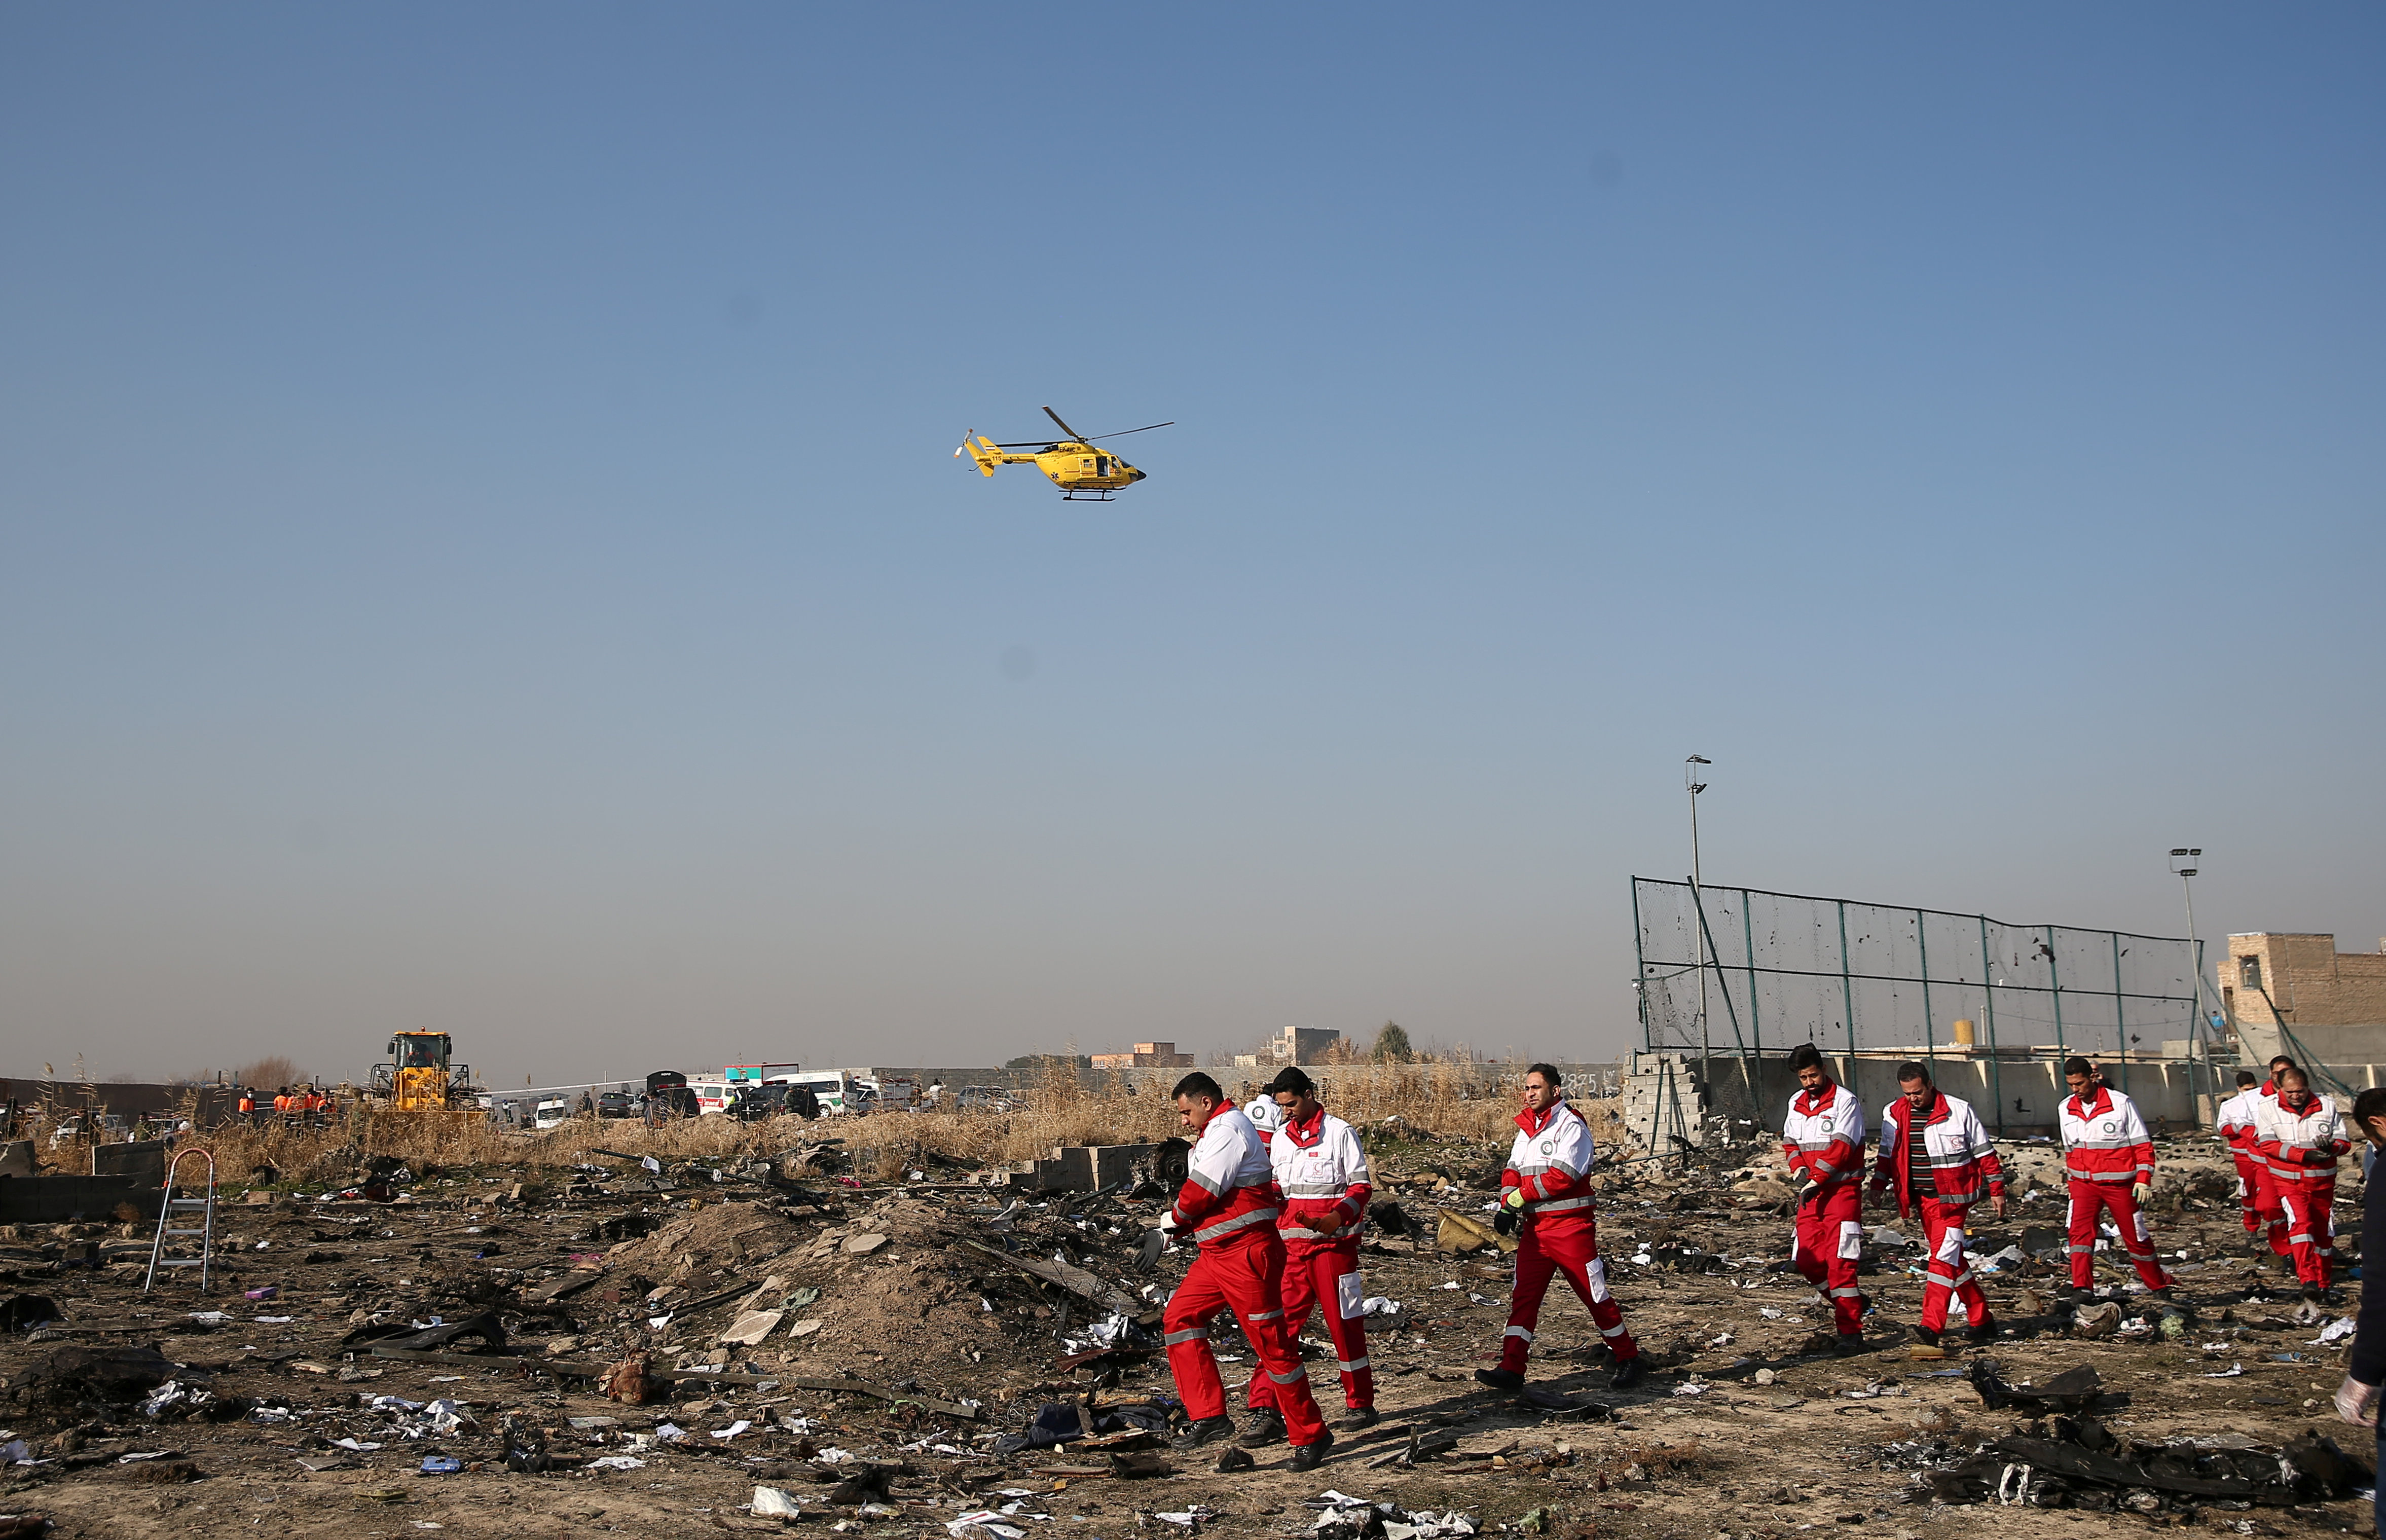 Rescue team works among debris of a plane belonging to Ukraine International Airlines, that crashed after take-off from Iran's Imam Khomeini airport, on the outskirts of Tehran, Iran January 8, 2020. Nazanin Tabatabaee/WANA (West Asia News Agency) via REUTERS